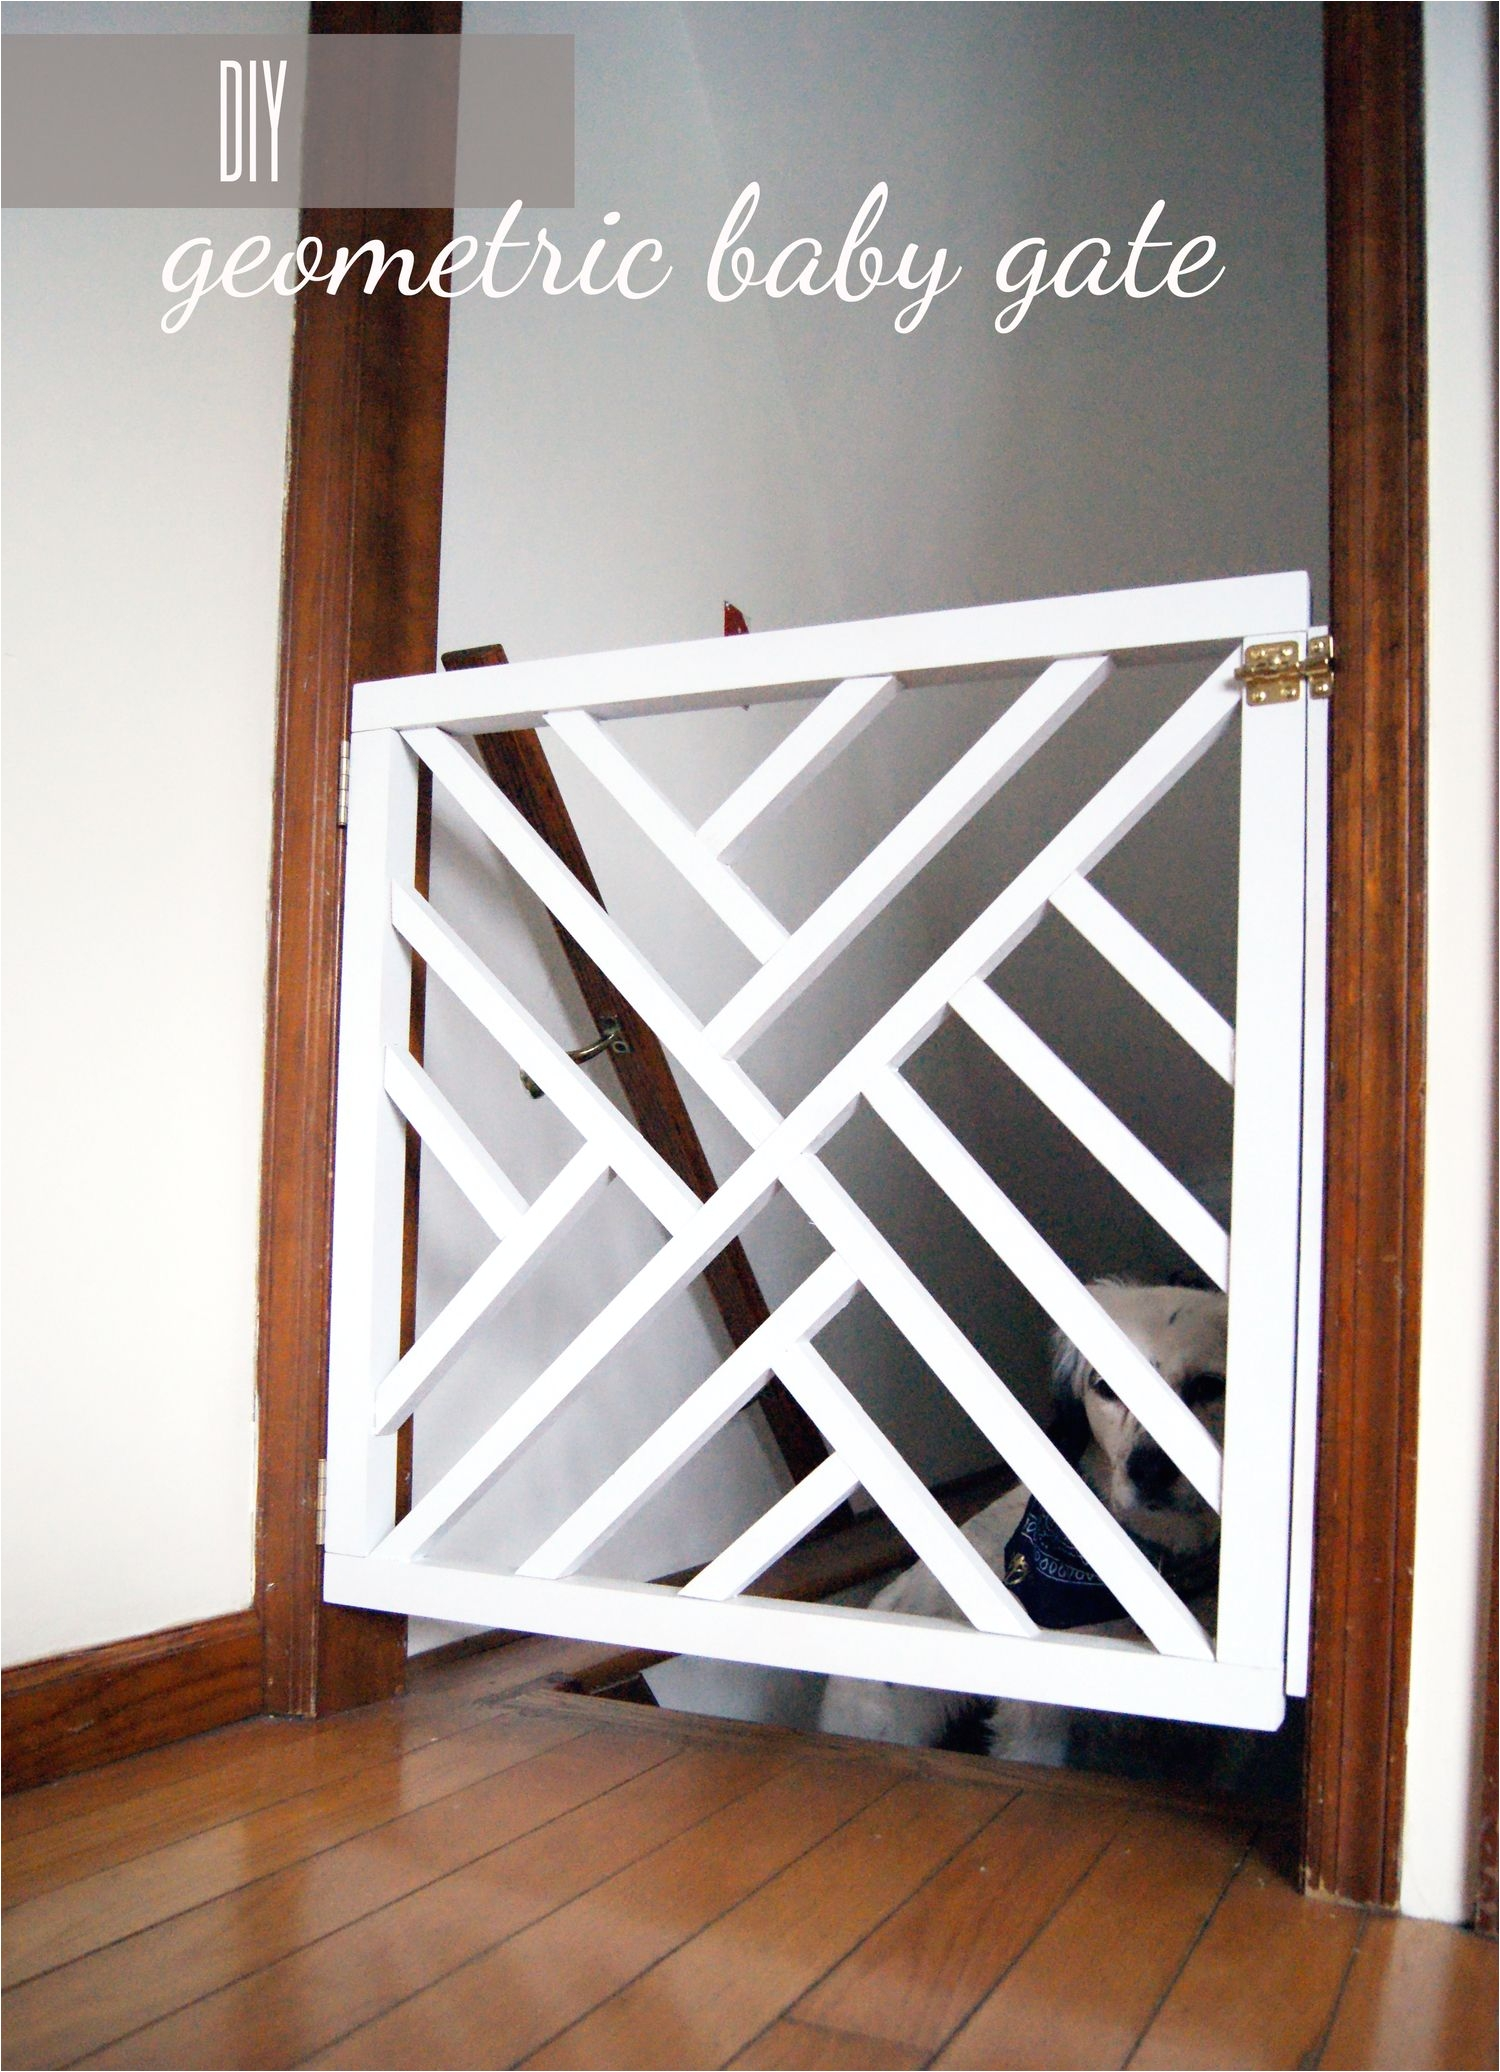 Decorative Baby Gates For Stairs Diy Geometric Baby Gate